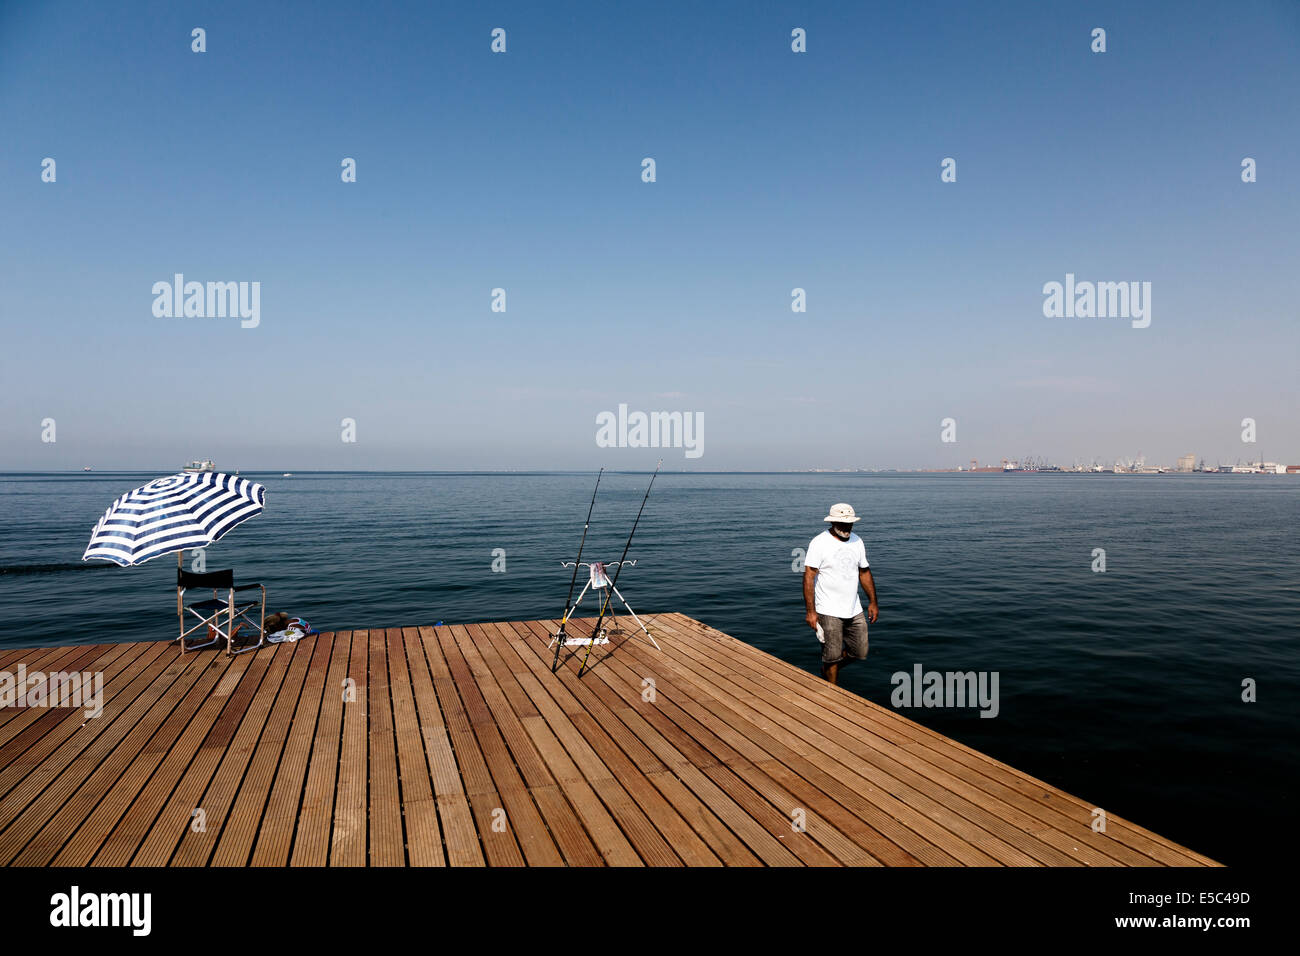 A fisher at the seafront of Thessaloniki, Greece. - Stock Image